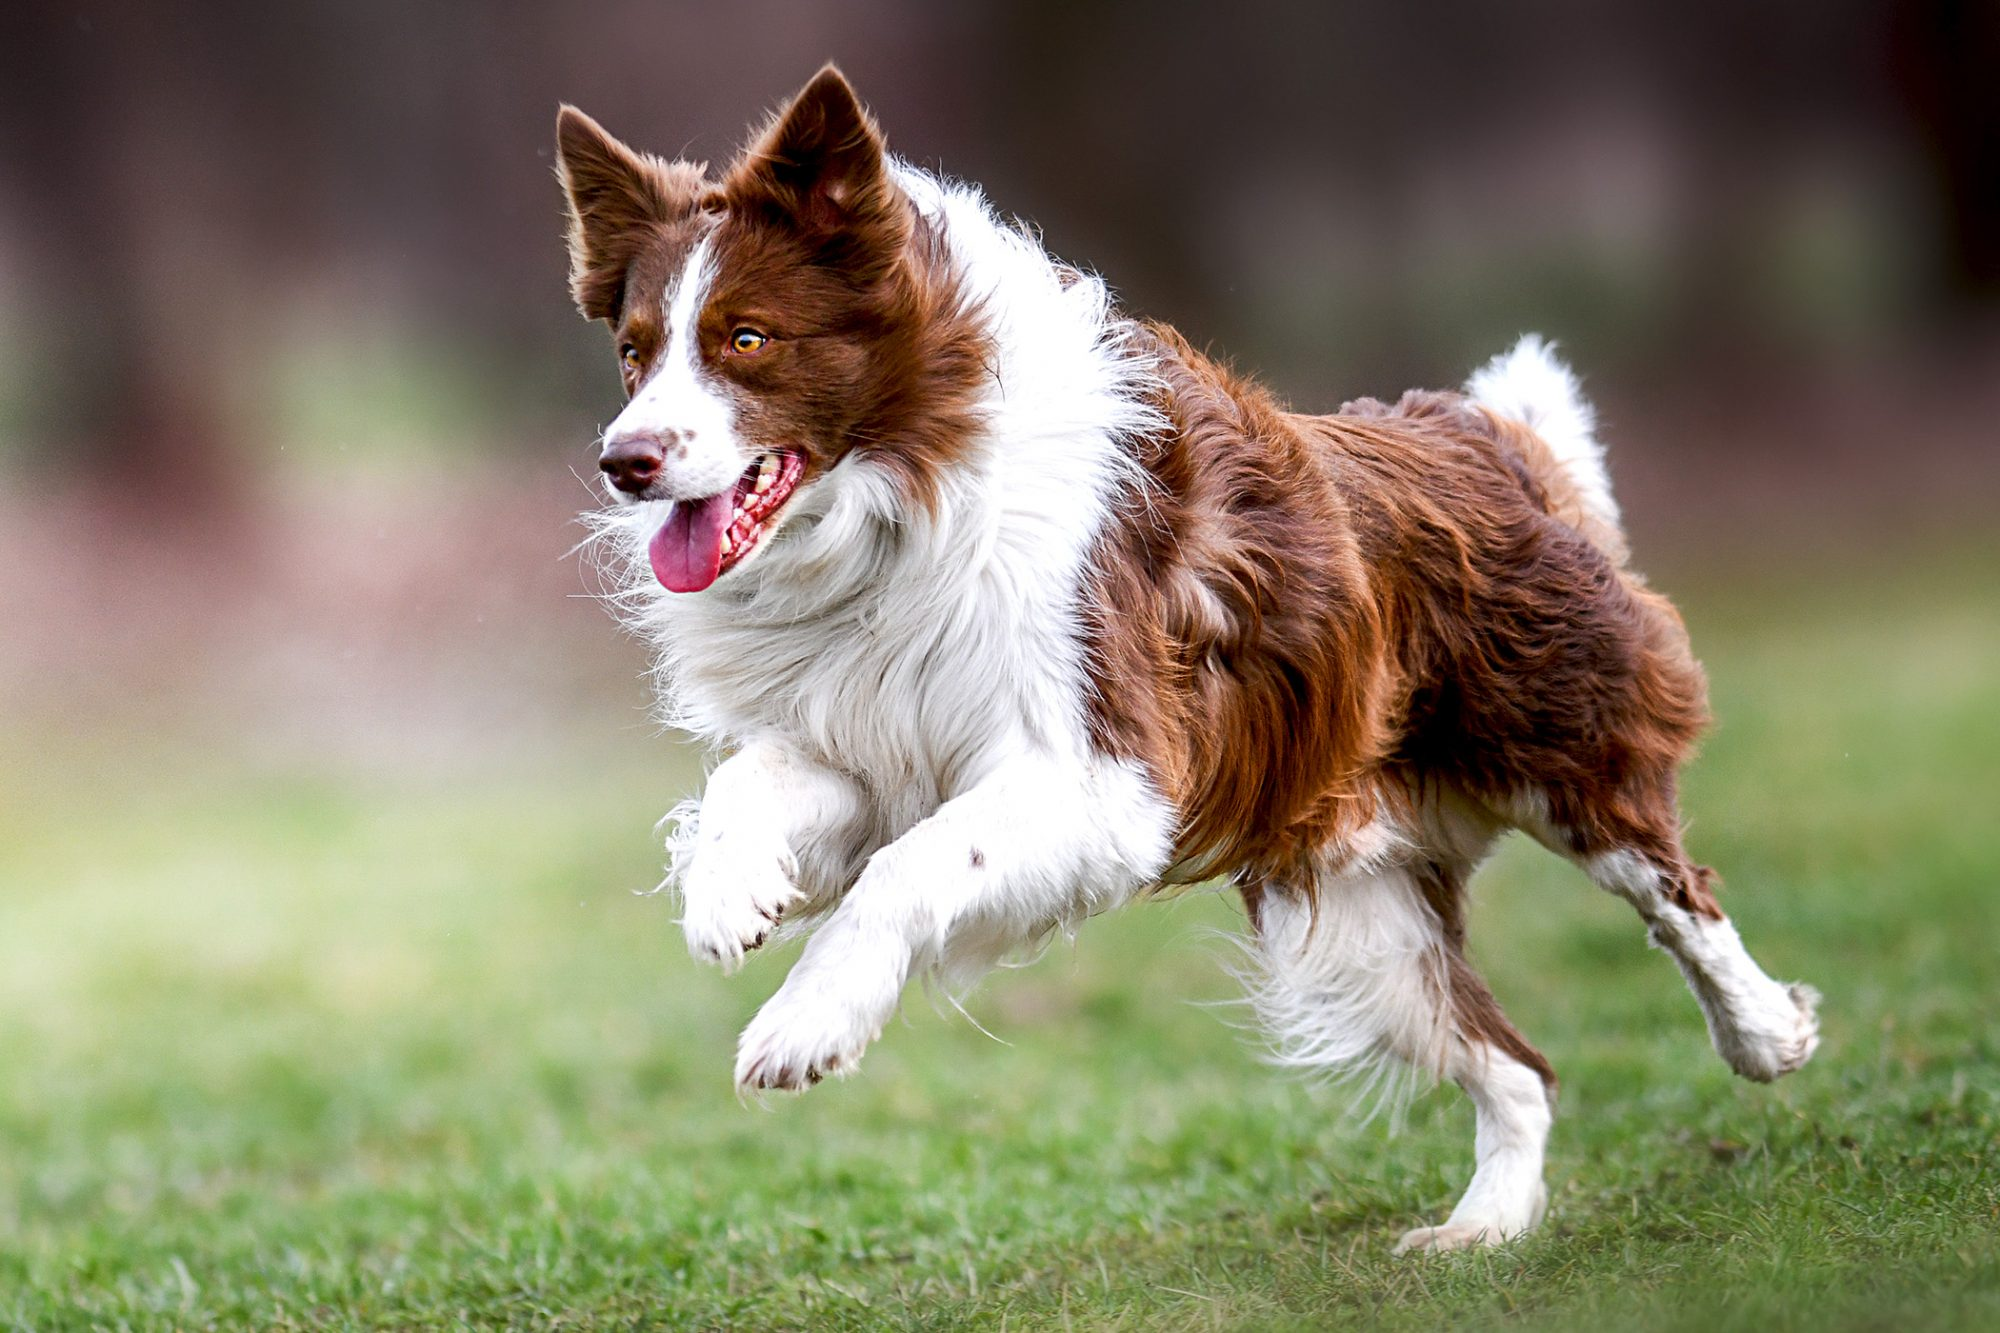 Copper and white border collie bounds across grass